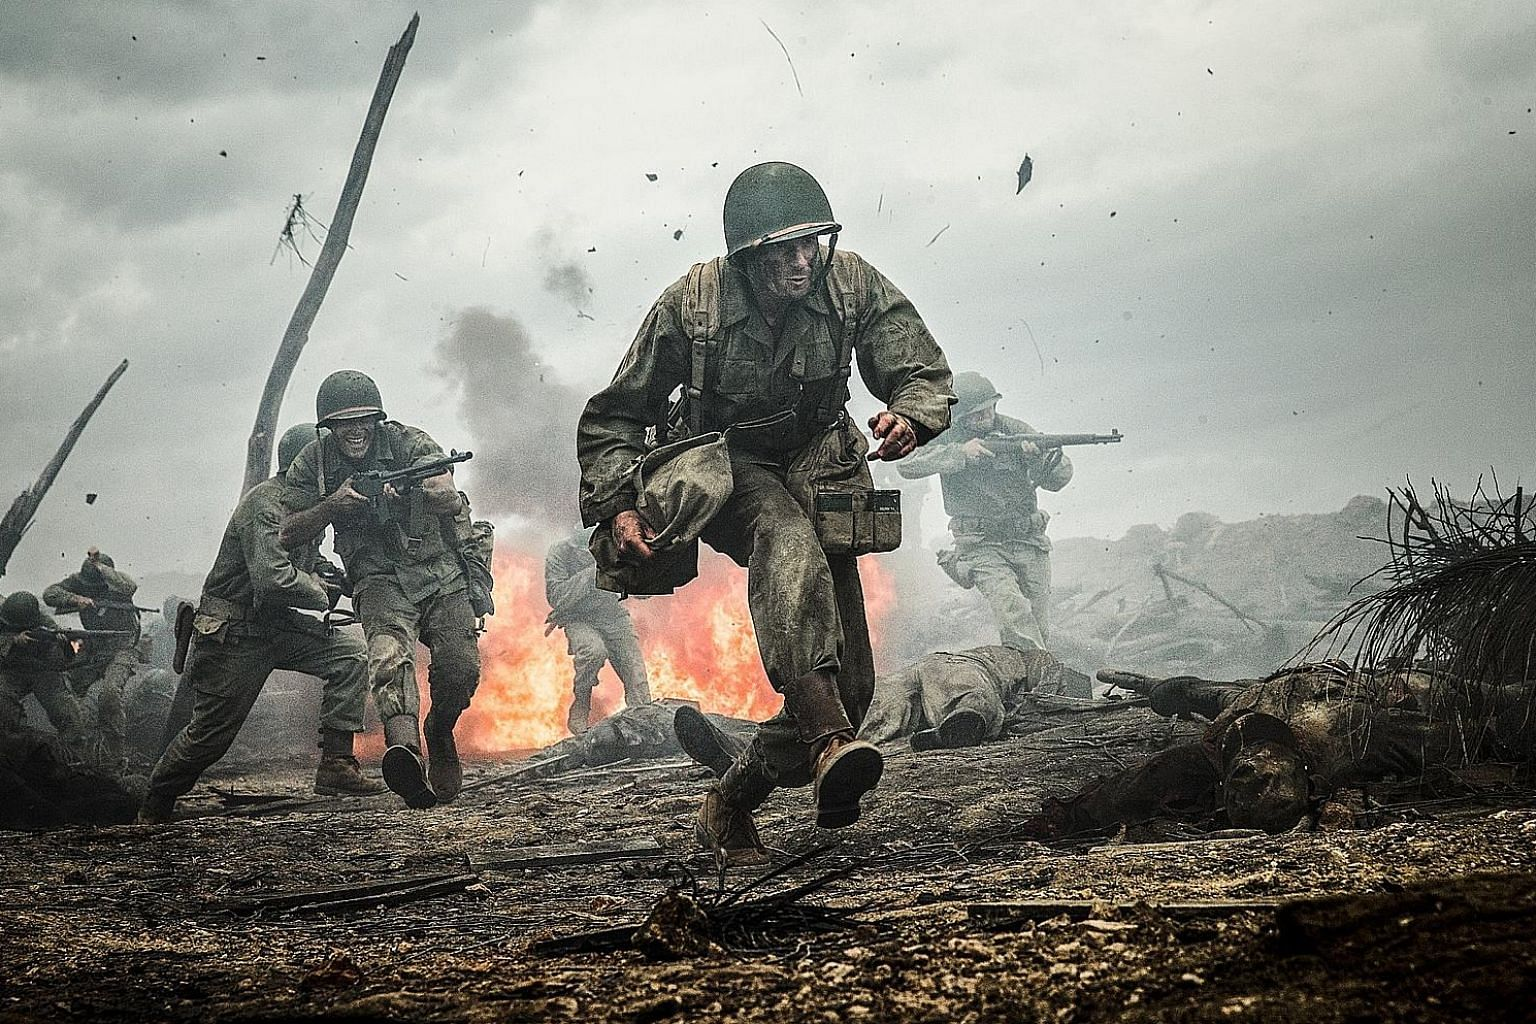 Andrew Garfield plays a soldier who refuses to bear arms in Hacksaw Ridge.